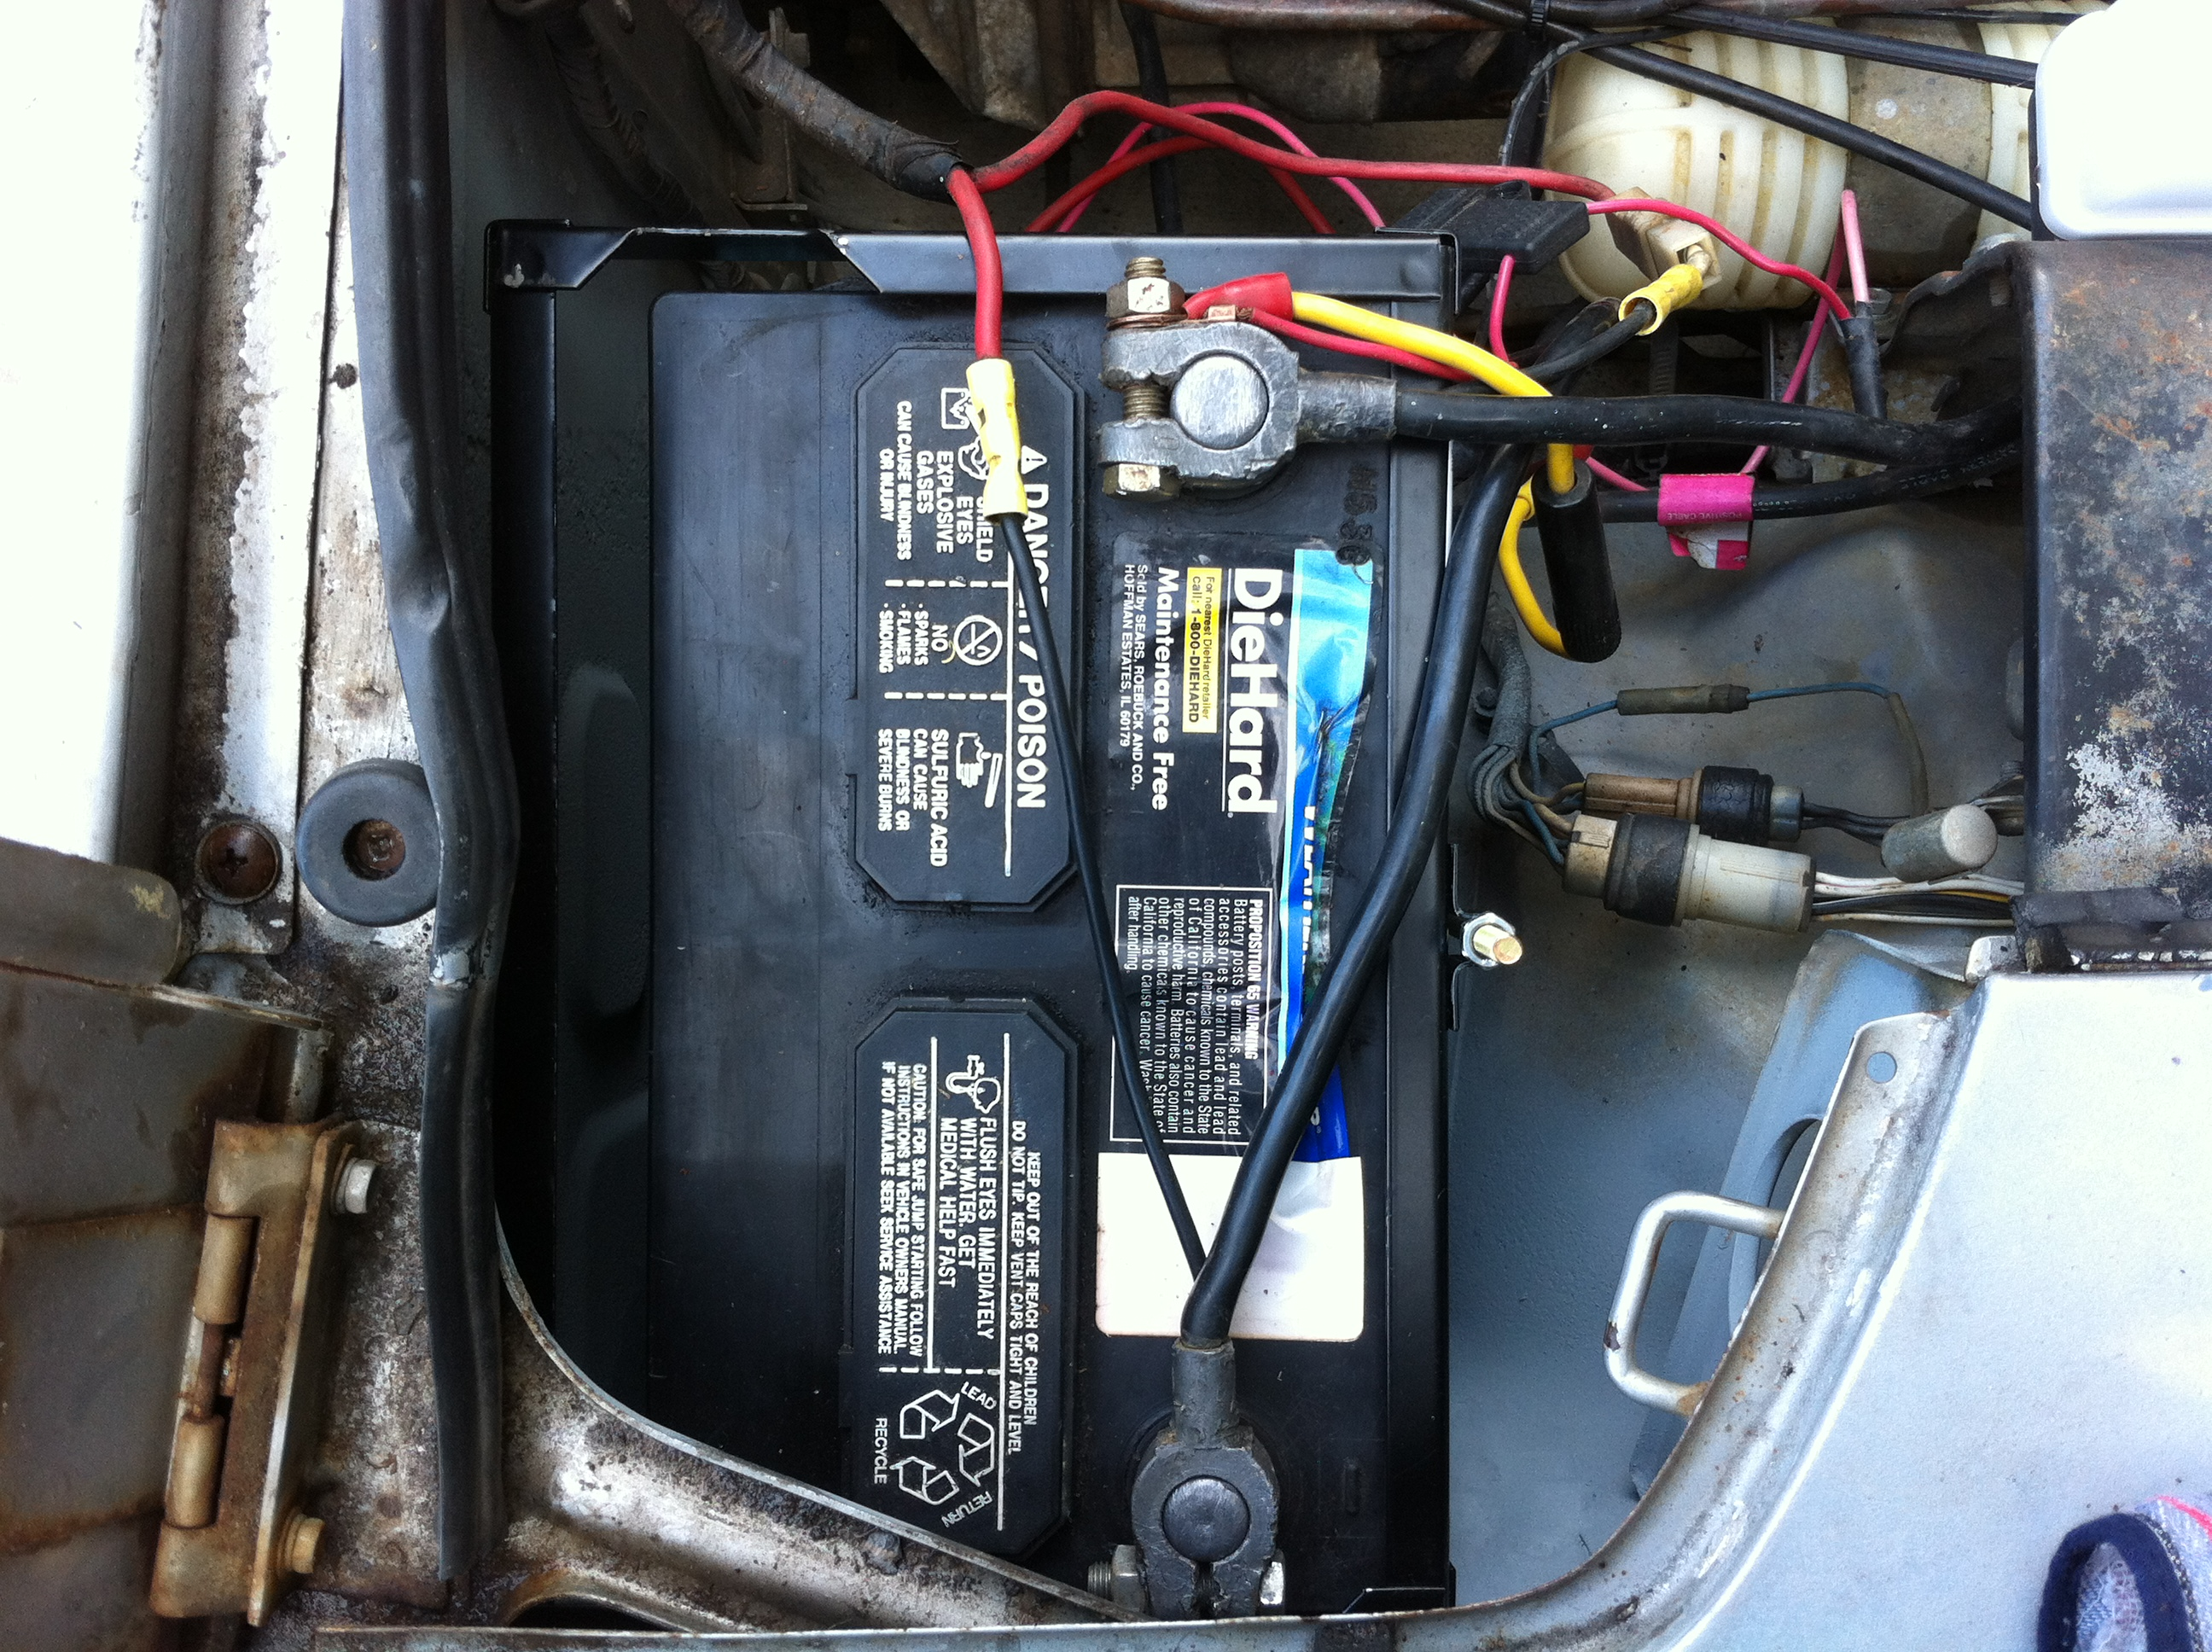 ... and will replace the bungee cord nicely. My only compliant would be the  sizing of the battery frame (as seen below); it's just too big and not fit  for a ...